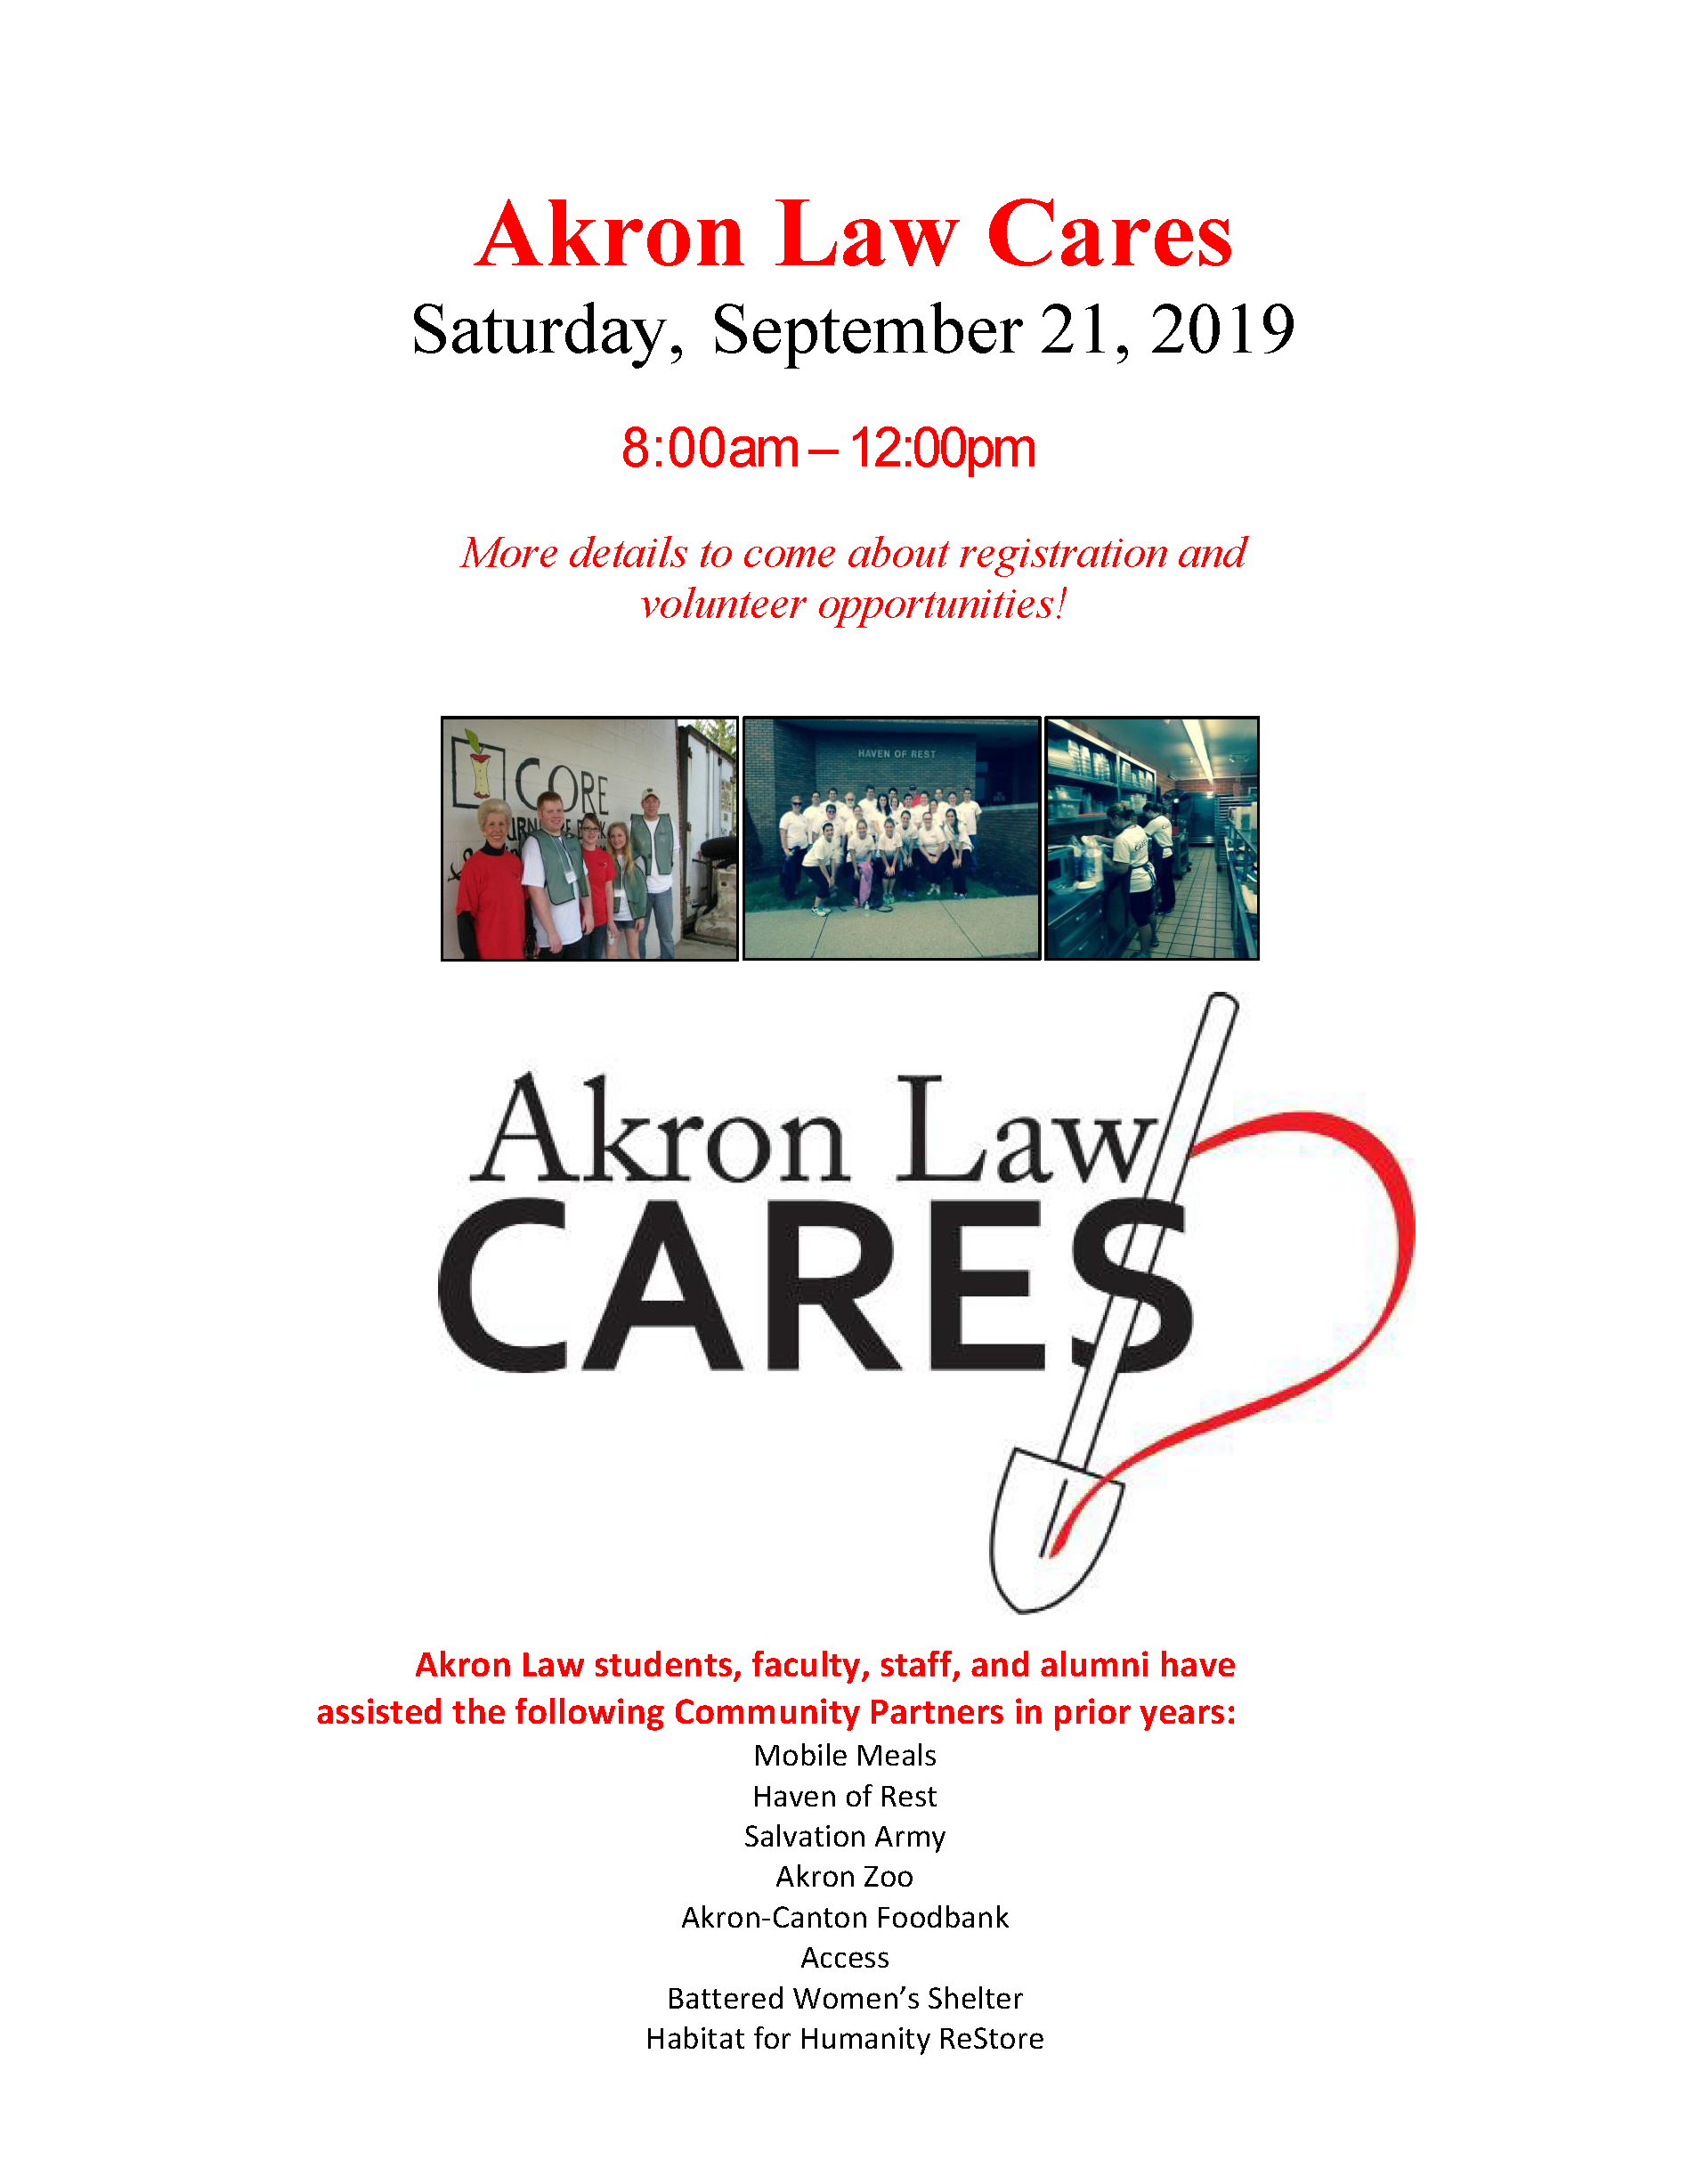 Akron Law Cares flyer 2019